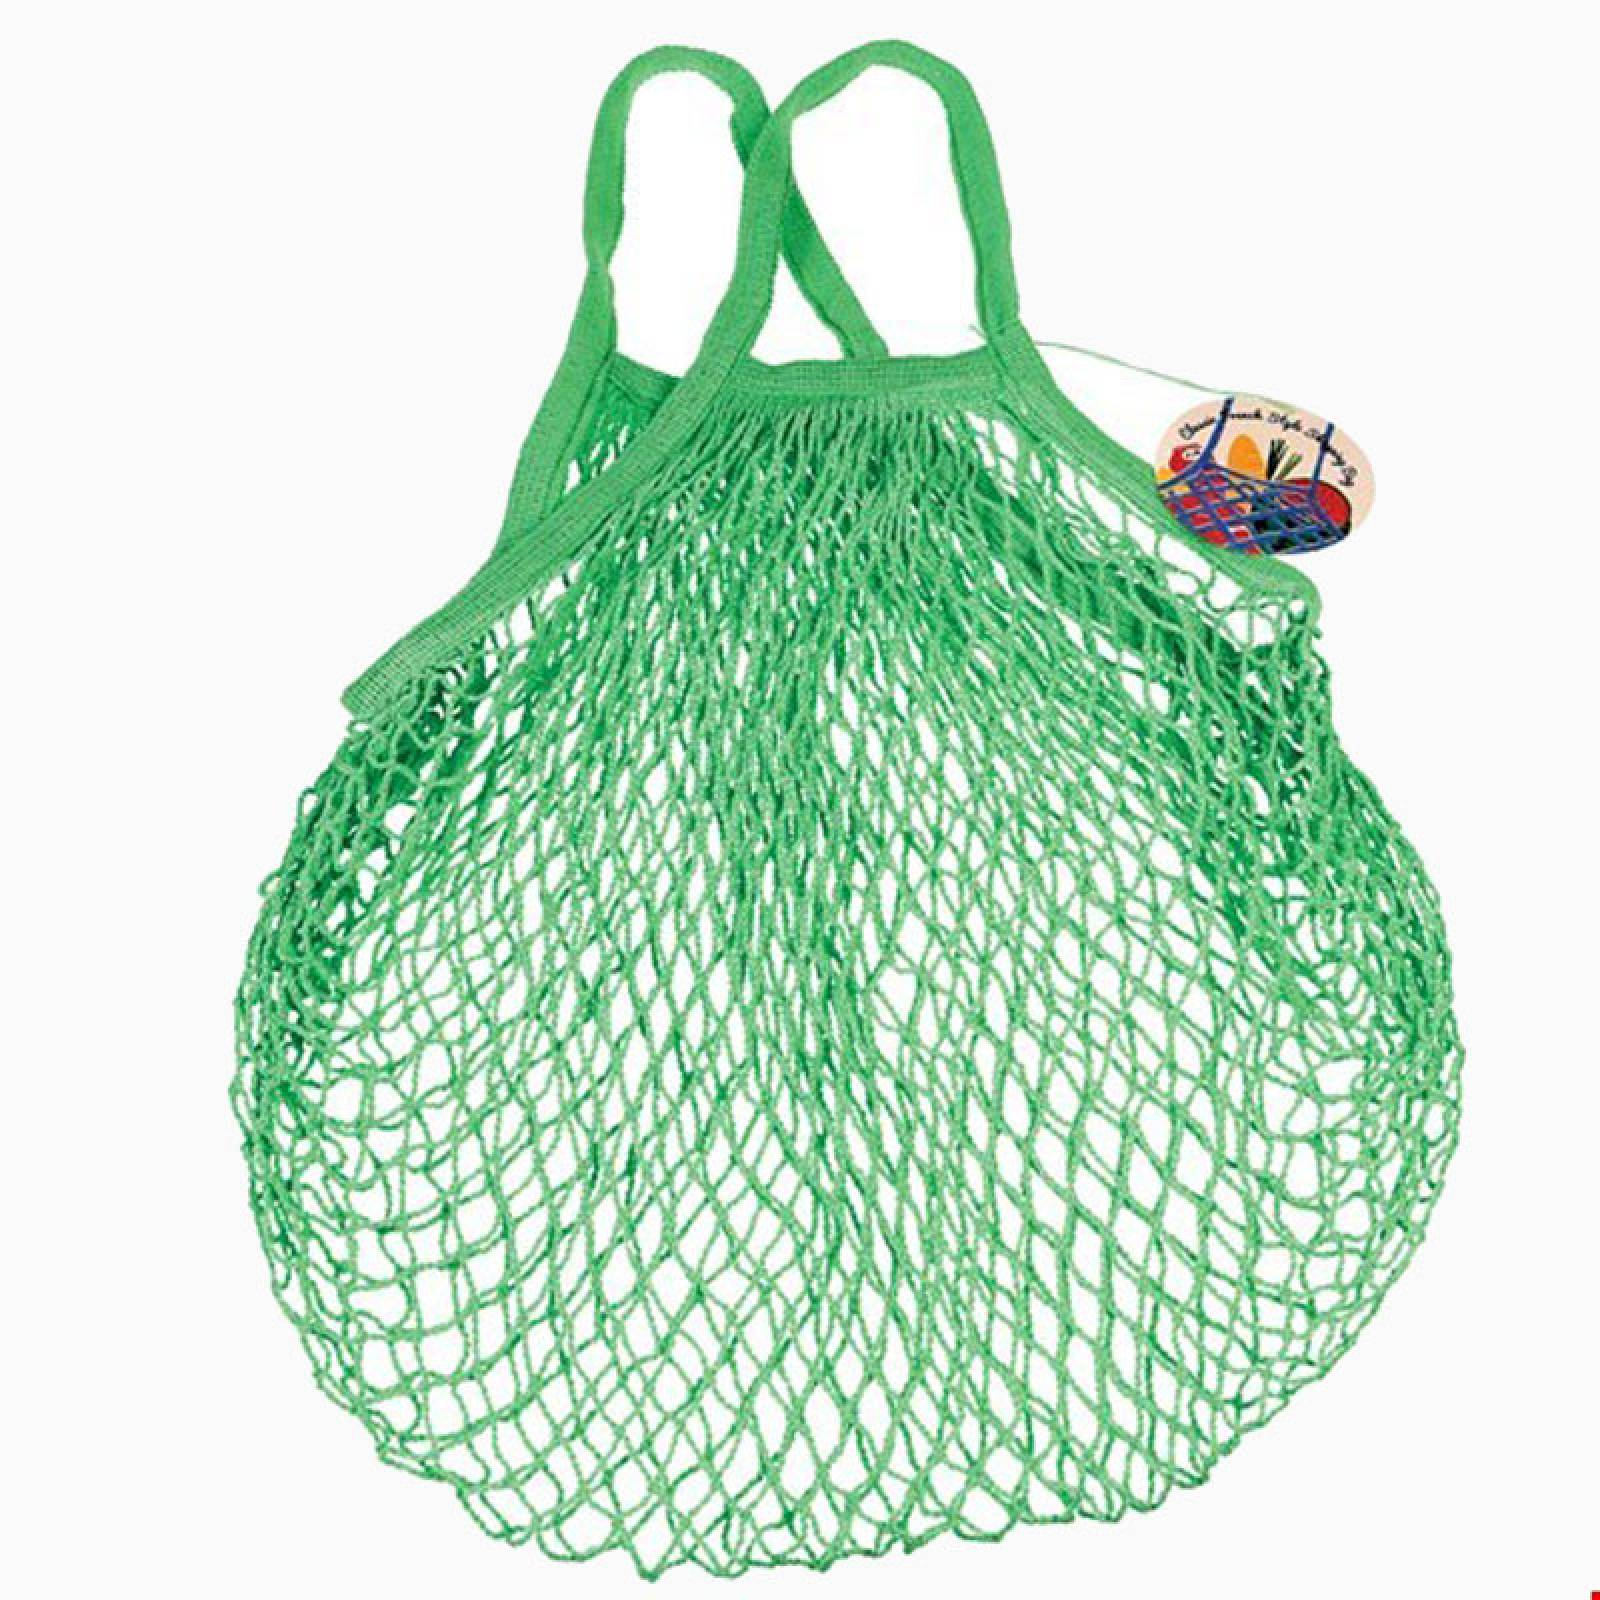 Green String Shopping Bag thumbnails